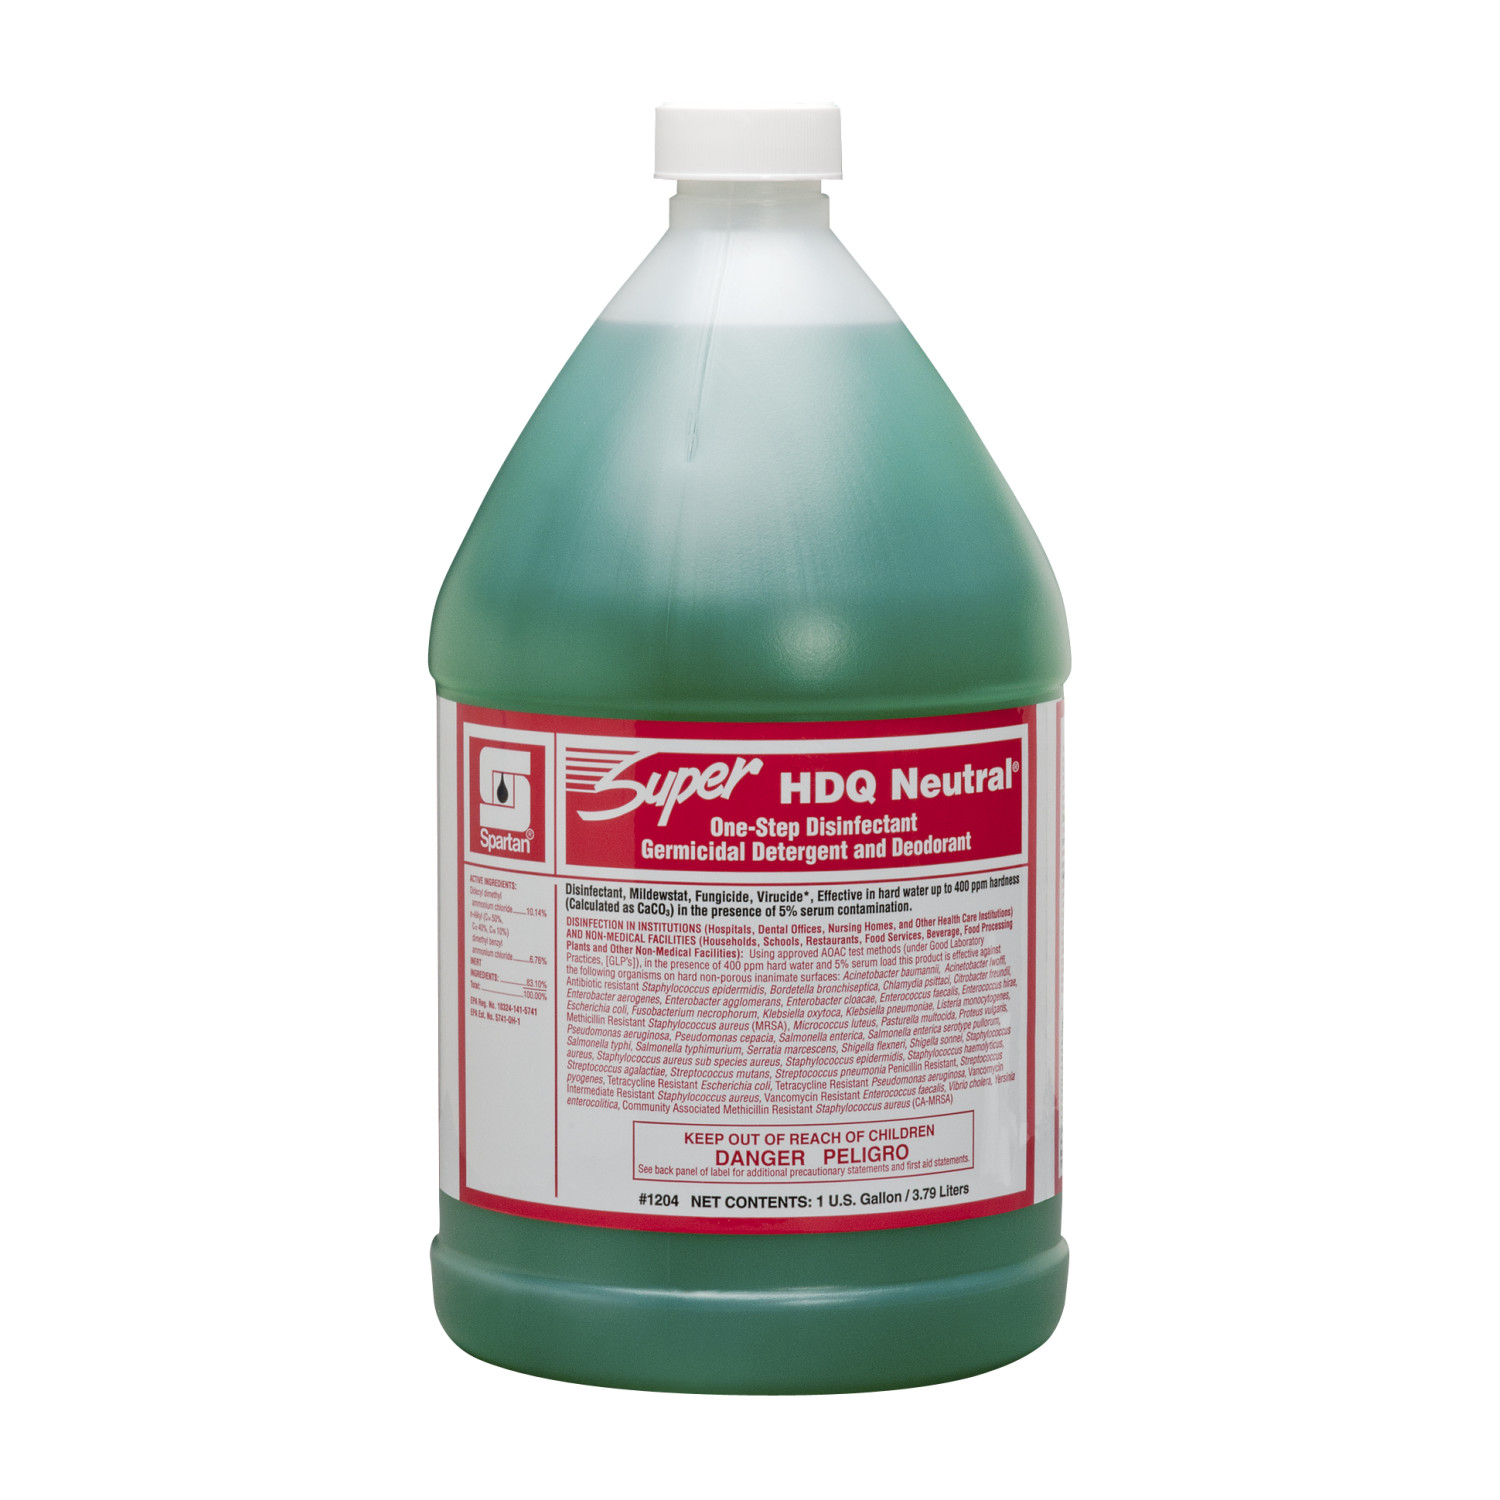 SUPER HDQ NEUTRAL CLEANER (4)